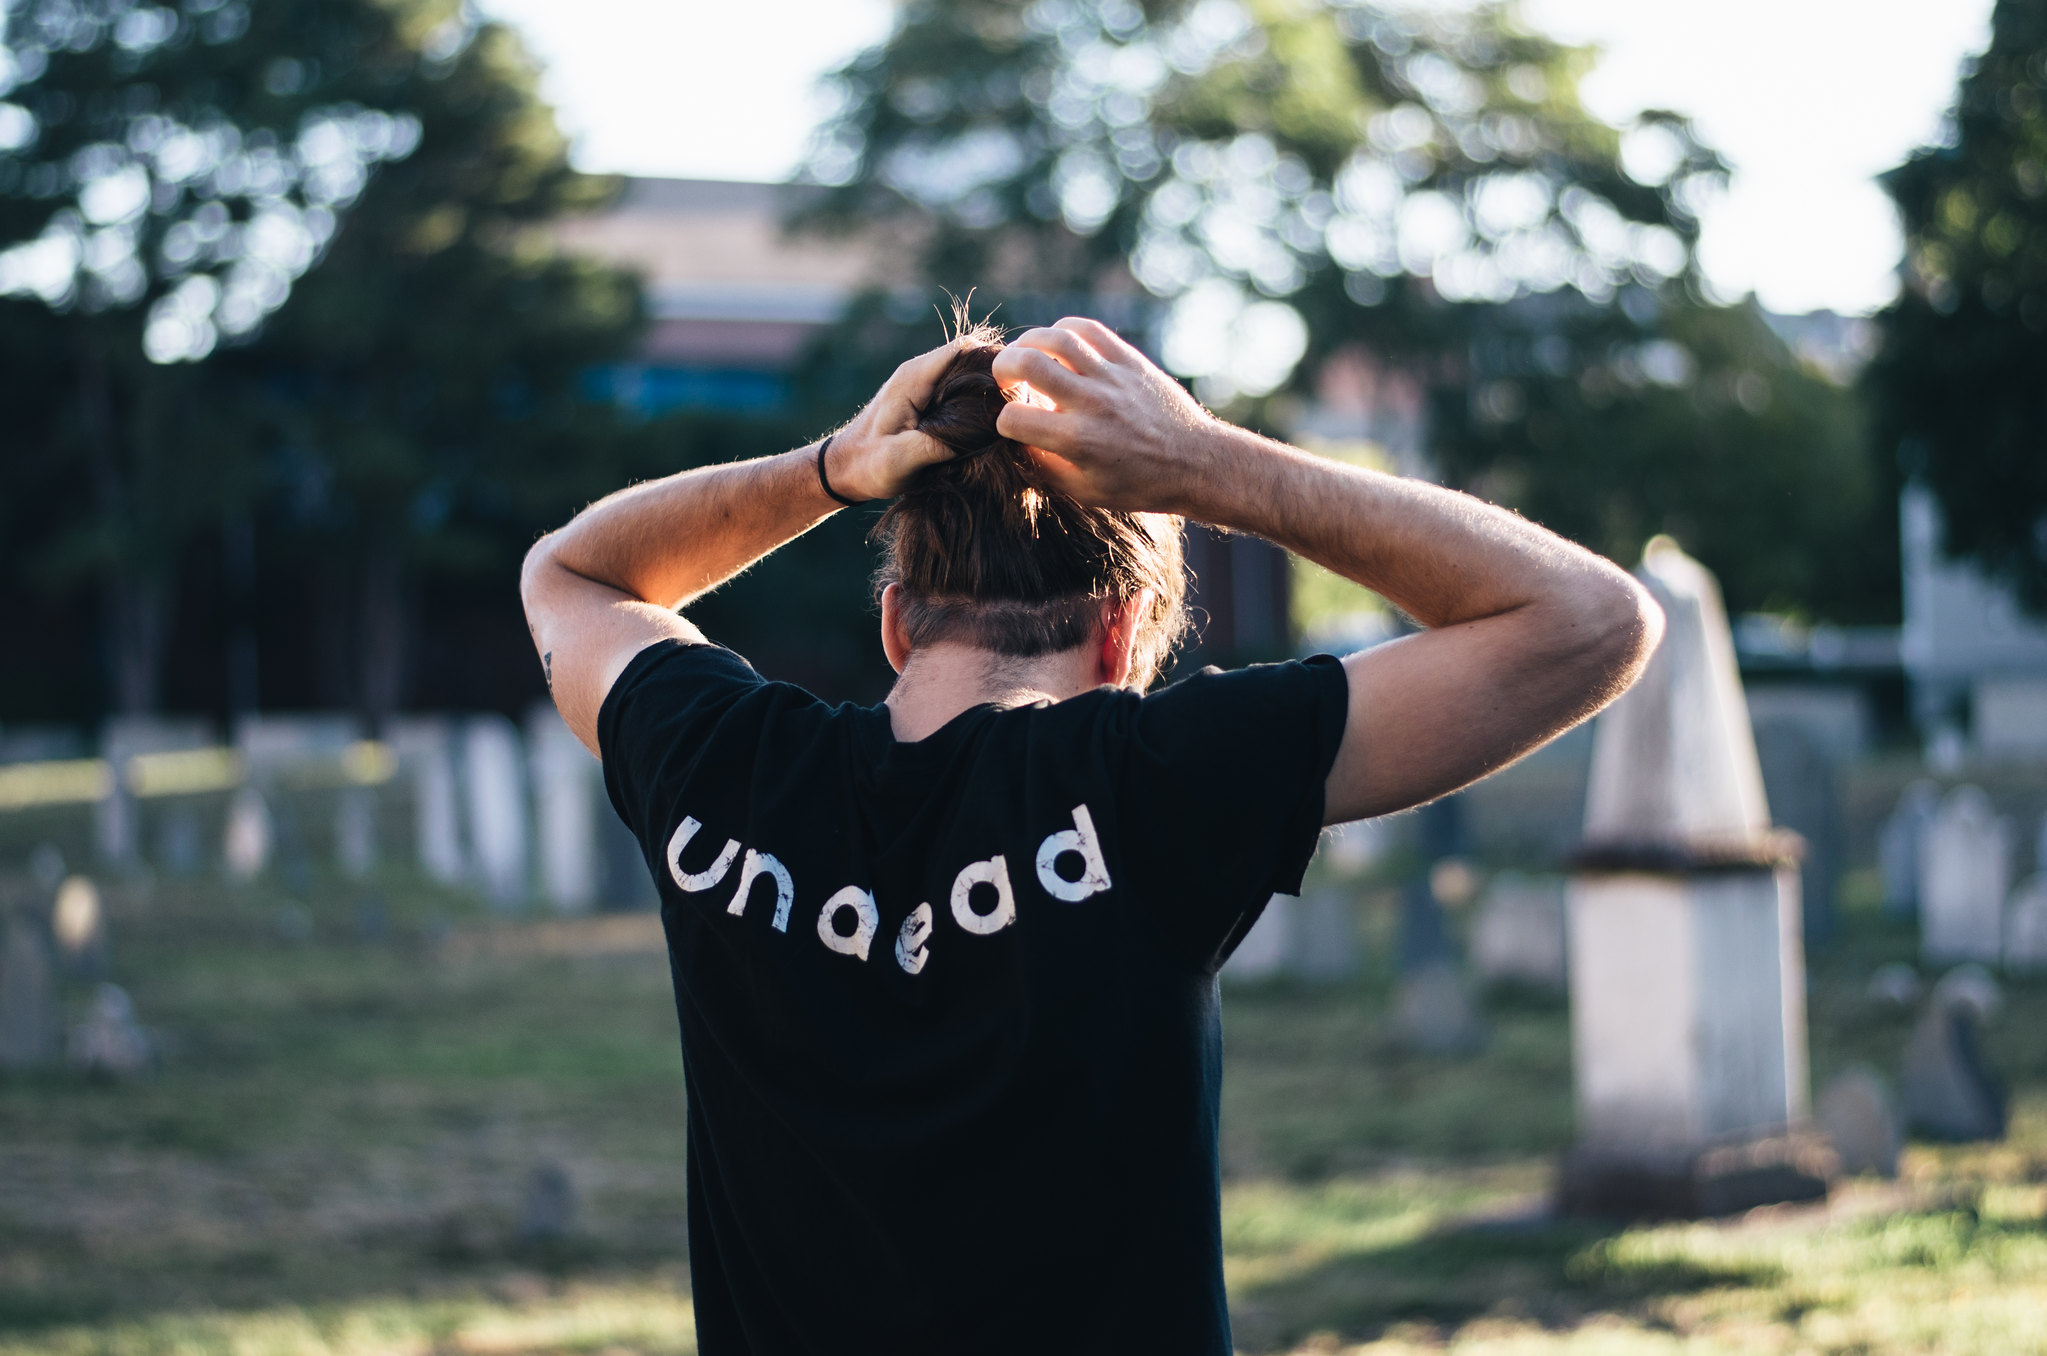 Man Bun and Undead Shirt in Graveyard on juliettelaura.blogspot.com